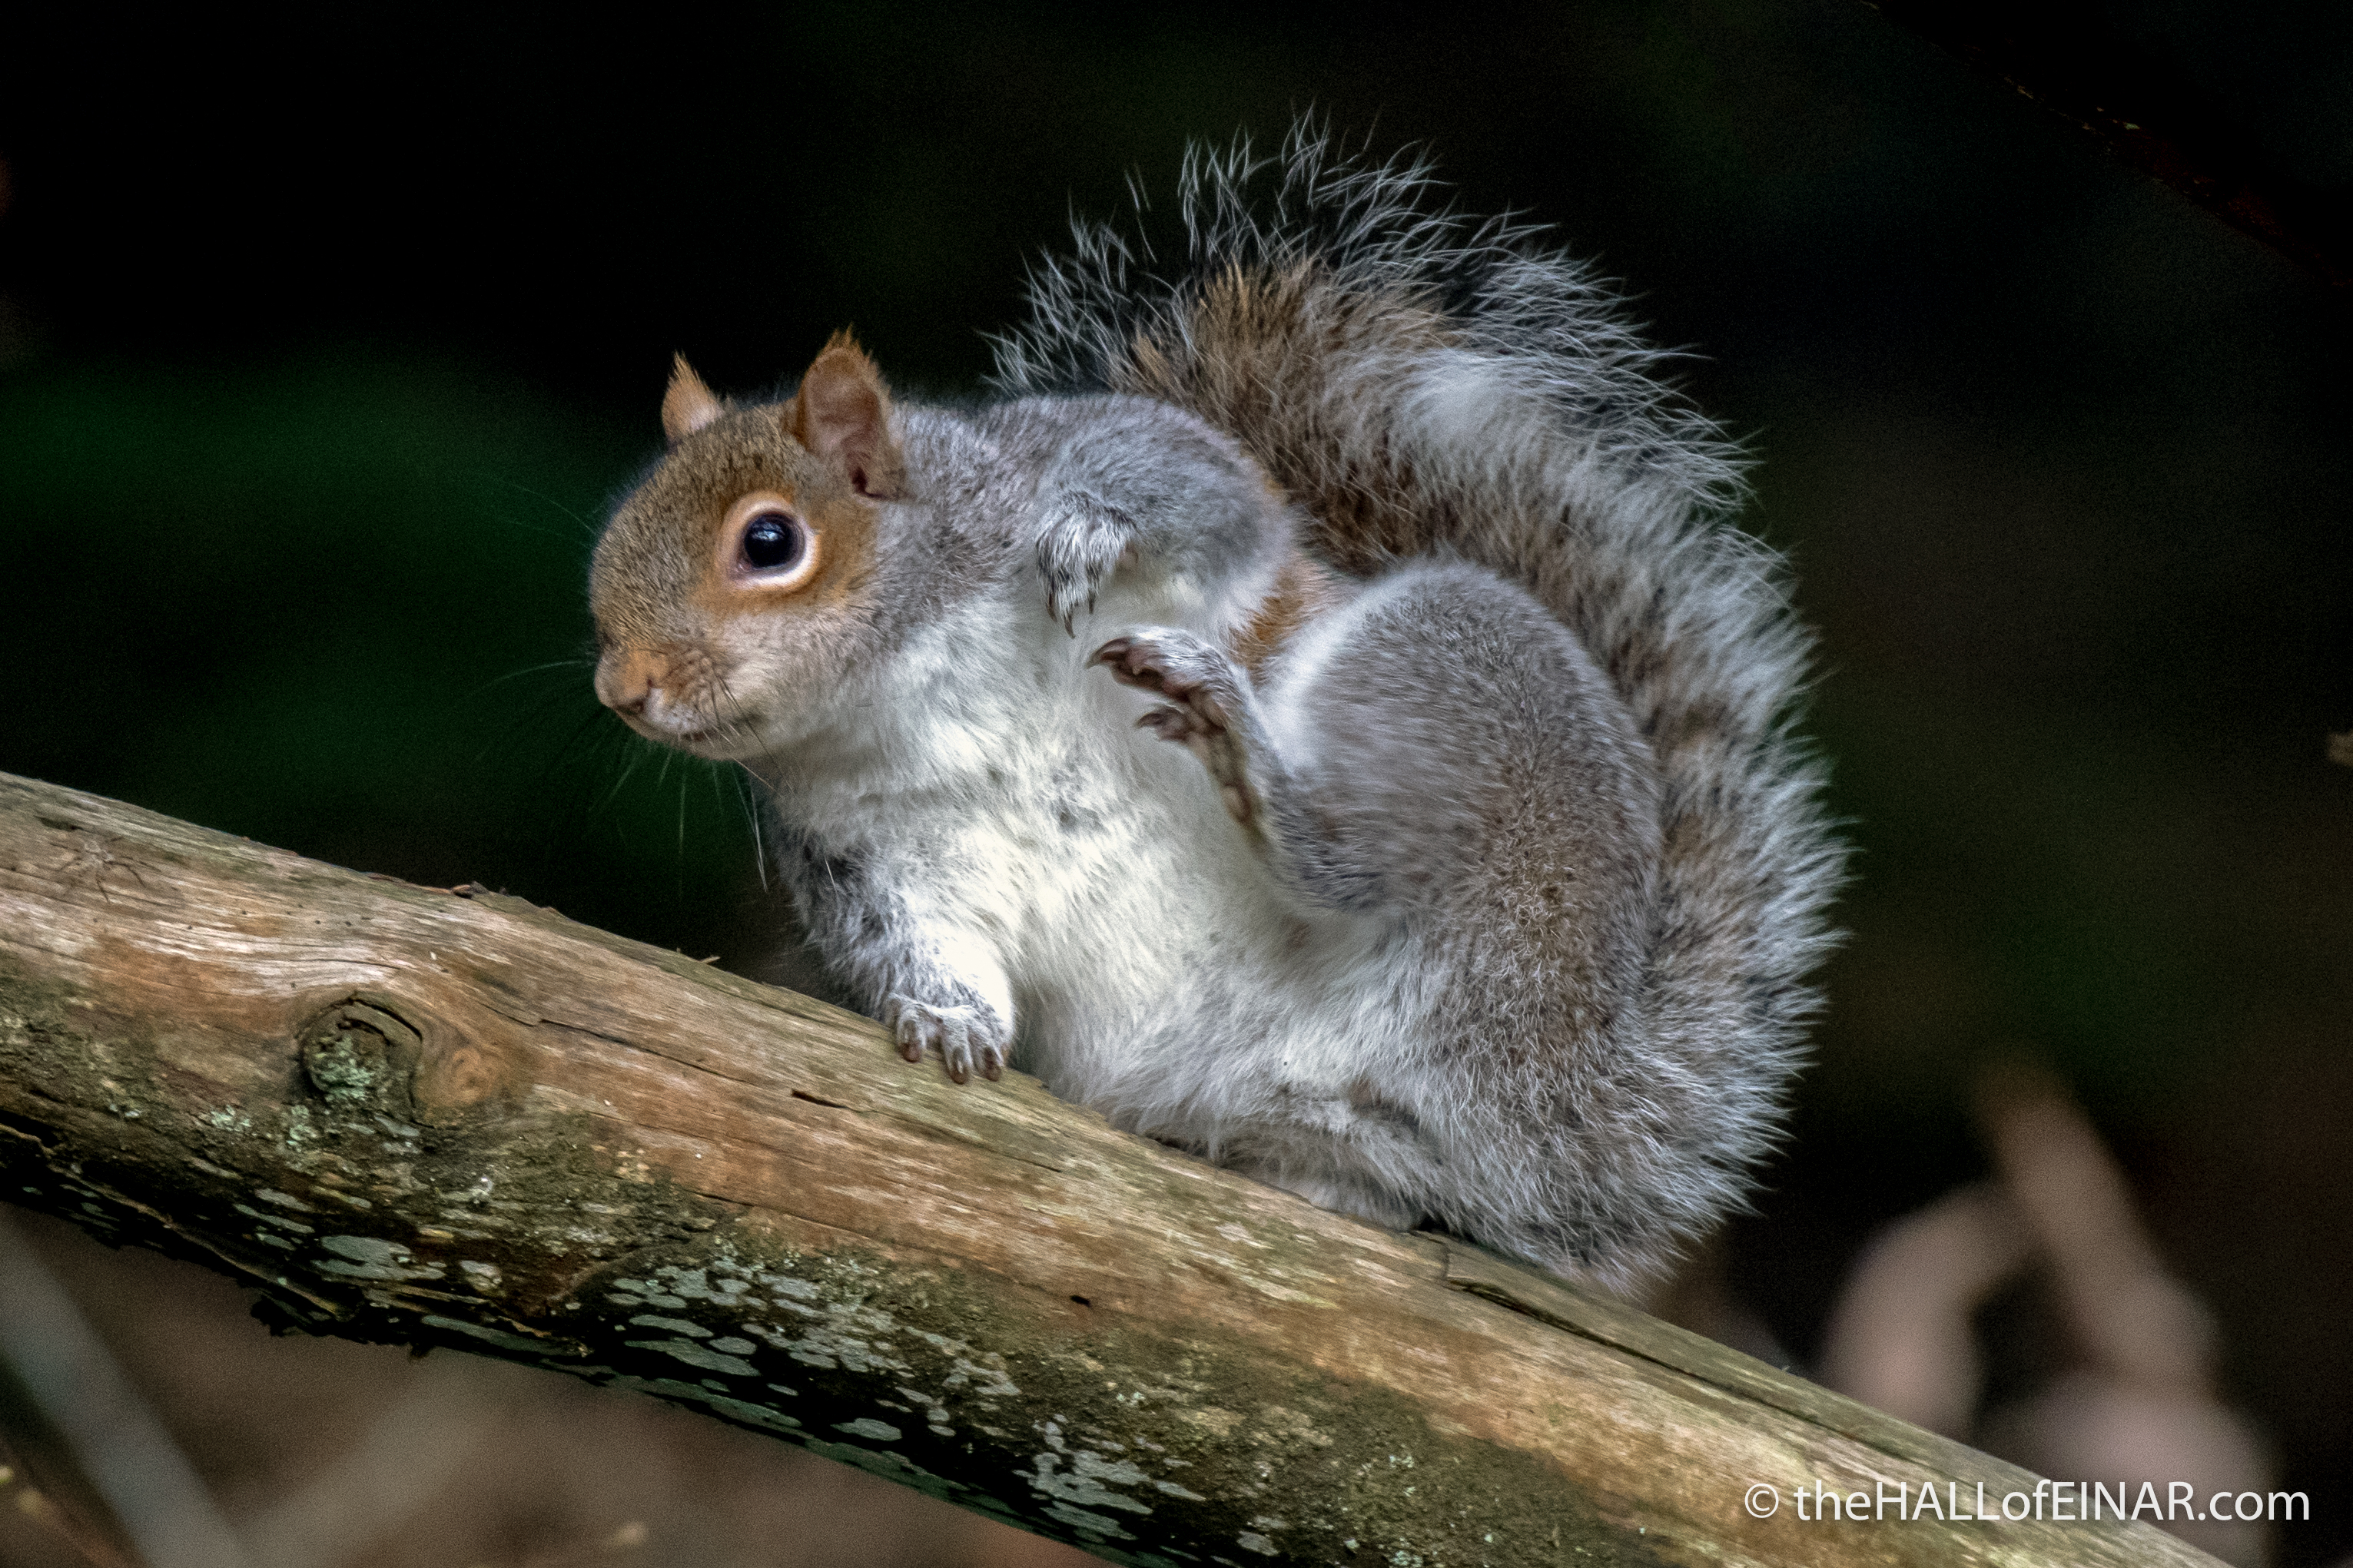 Squirrel - The Hall of Einar - photograph (c) David Bailey (not the)